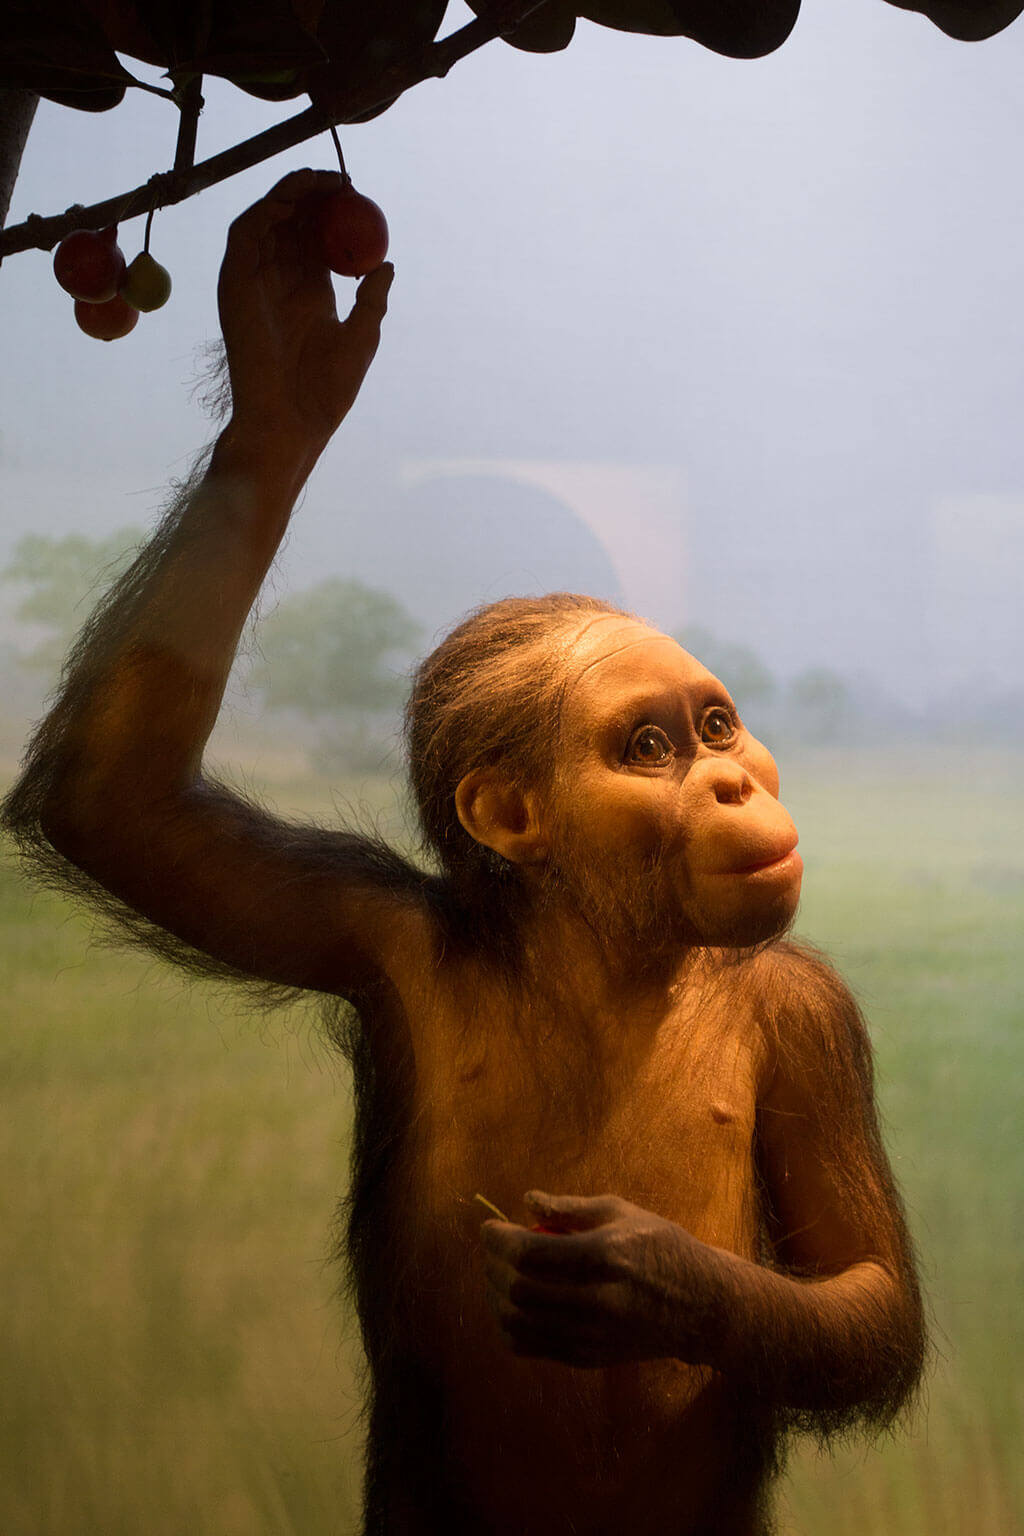 drive-swim-fly-california-academy-of-sciences-san-francisco-nitelife-adult-museum-night-tusher-african-hall-selam-monkey